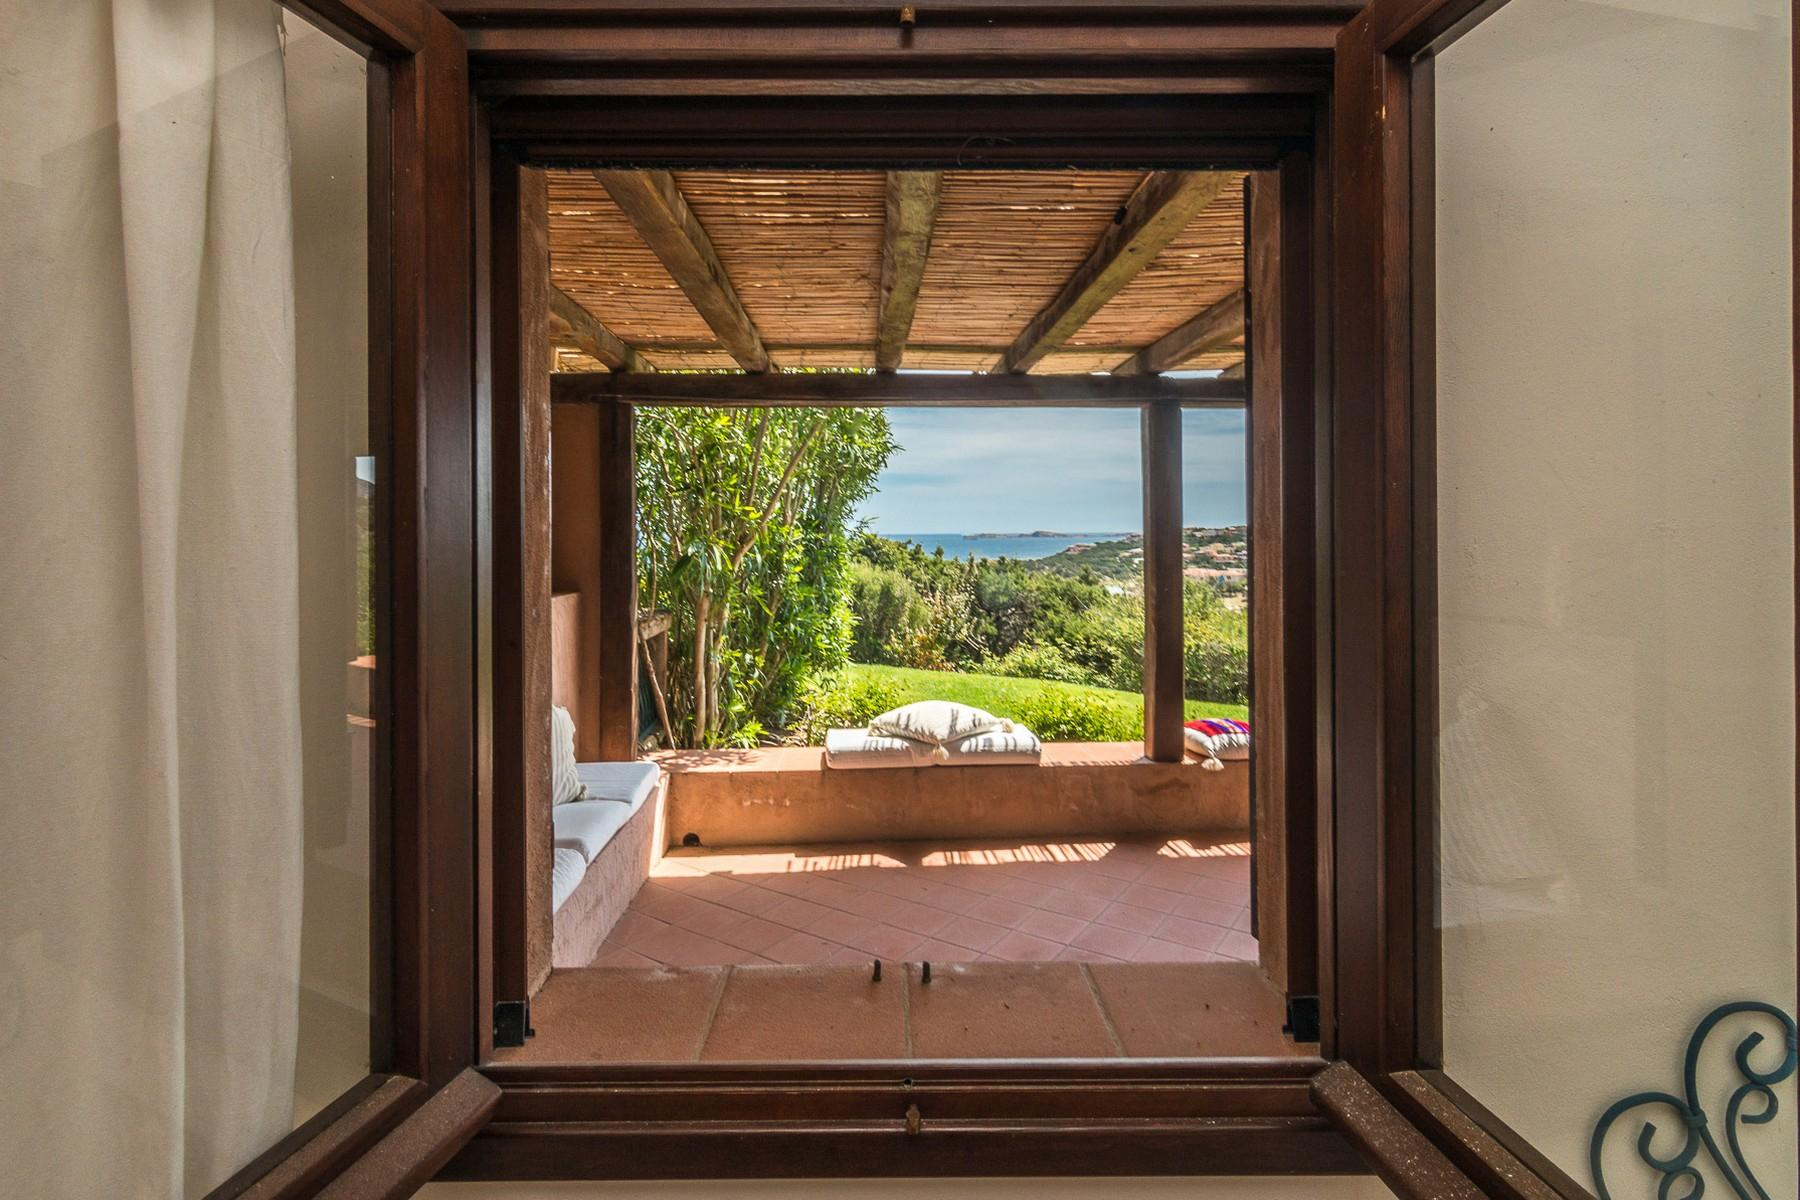 Porto Cervo Cala Granu Delightful Apartment a few steps from the beach - 8